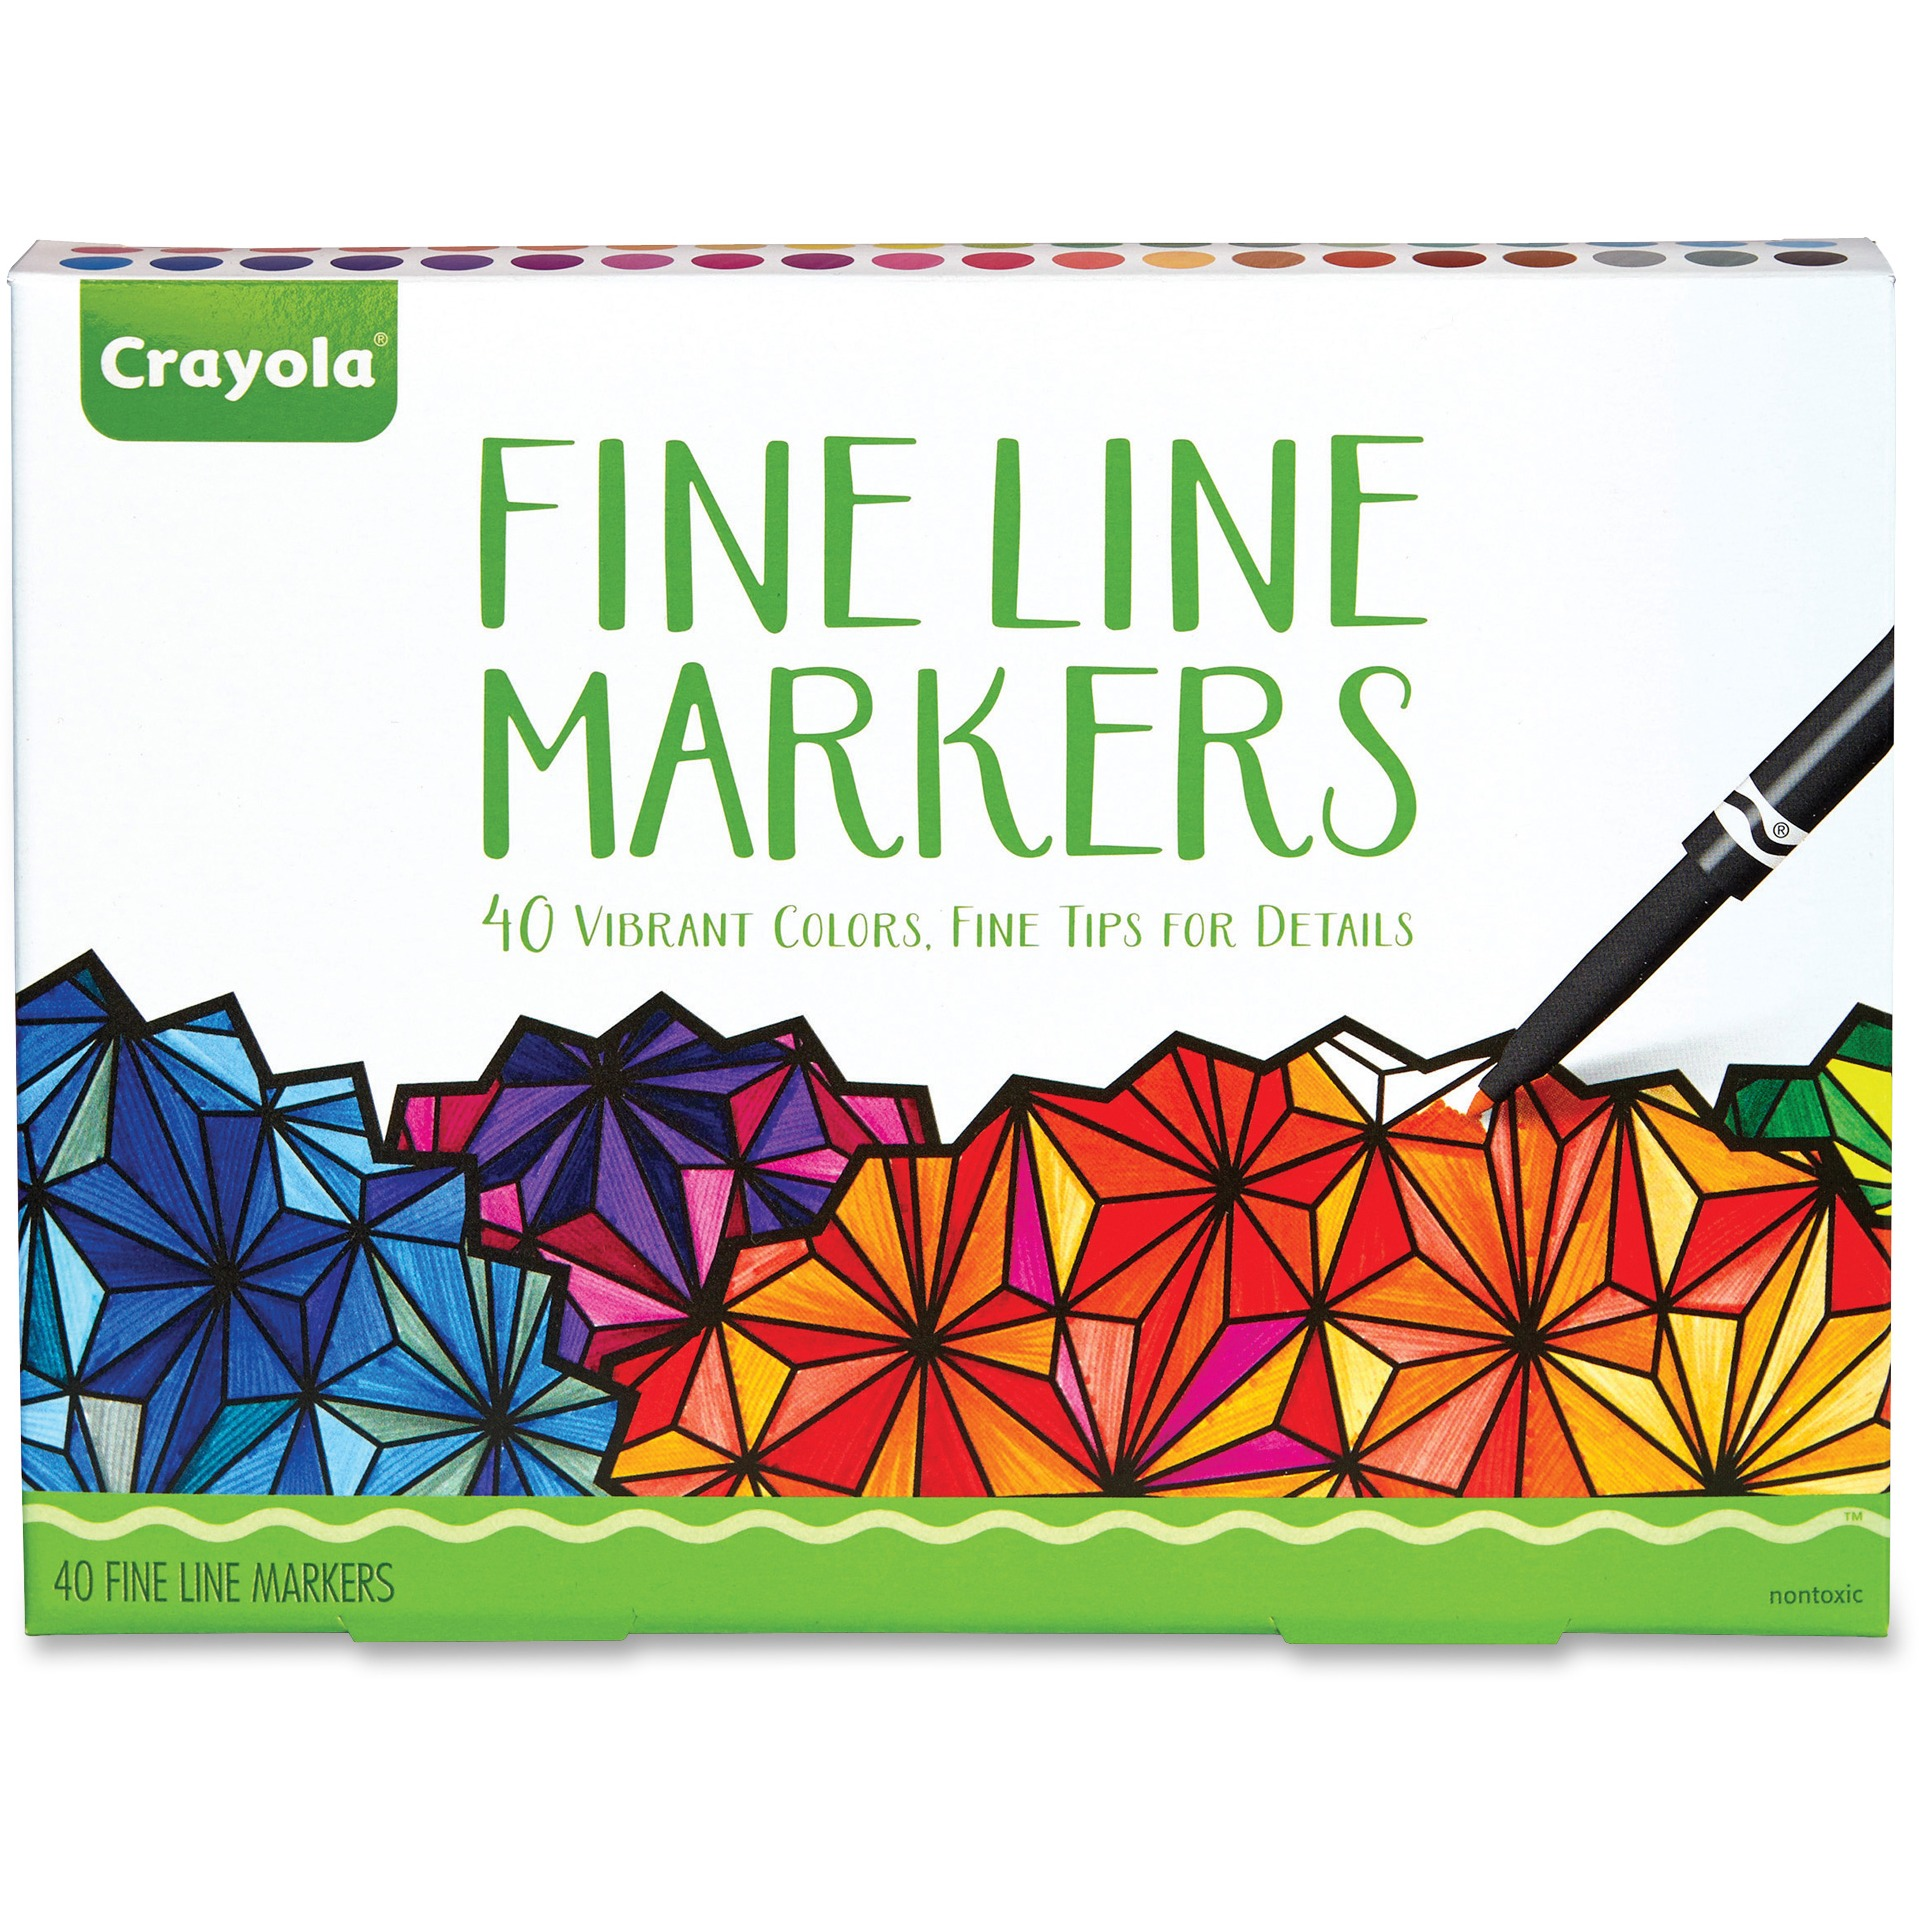 Crayola 40-Count Adult Coloring Fineline Markers, 40 Colors by Crayola, LLC